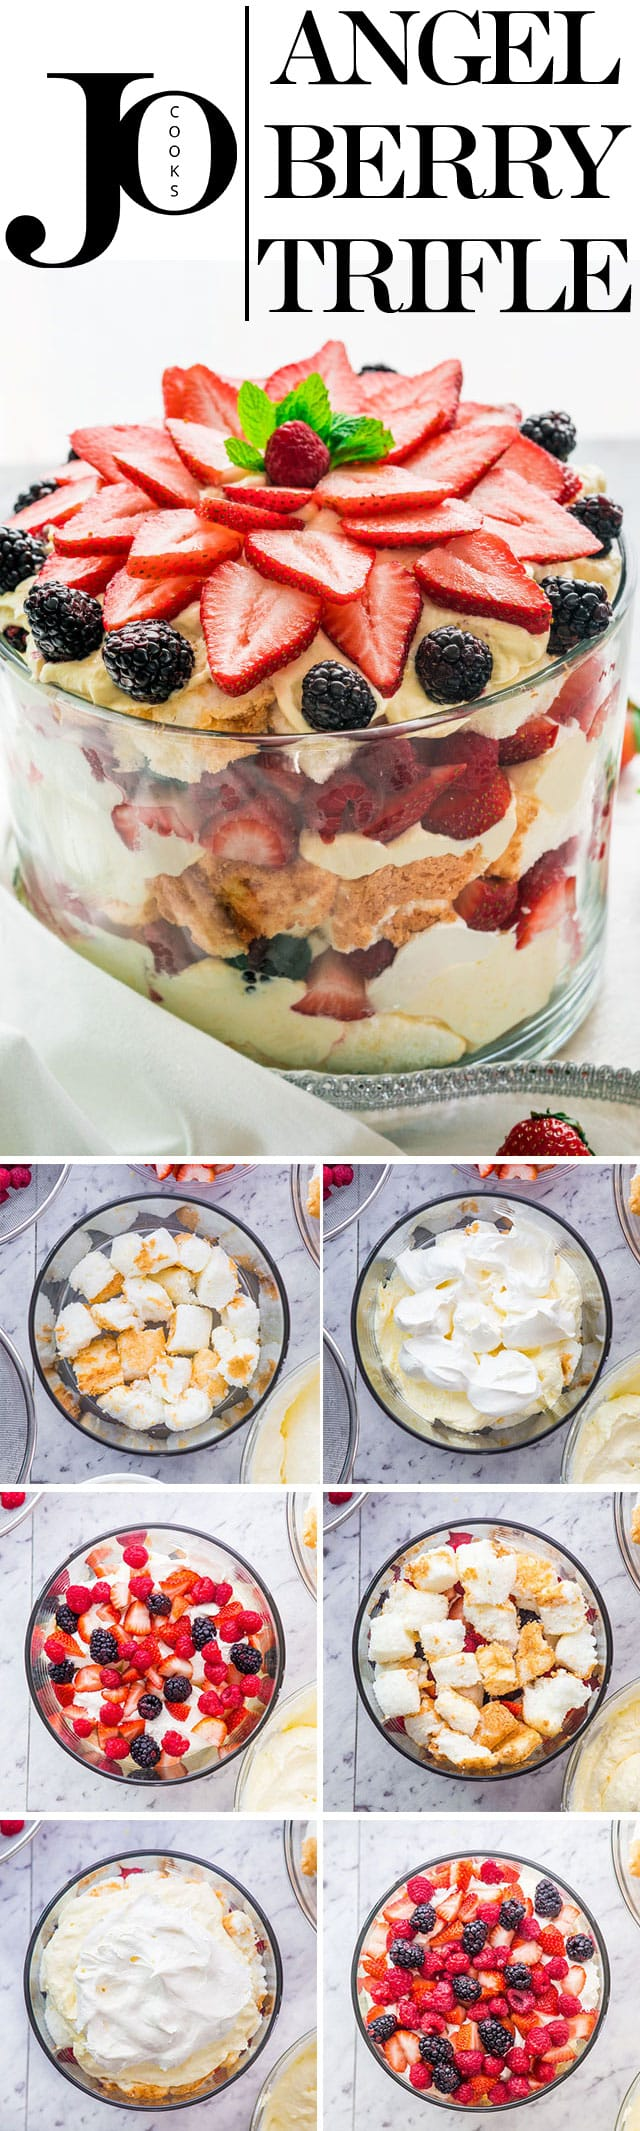 An Angel Berry Trifle that's perfect for Easter brunch made with fresh berries, angel food cake and an out of this world vanilla pudding and cream cheese custard. #trifle #easterbrunch